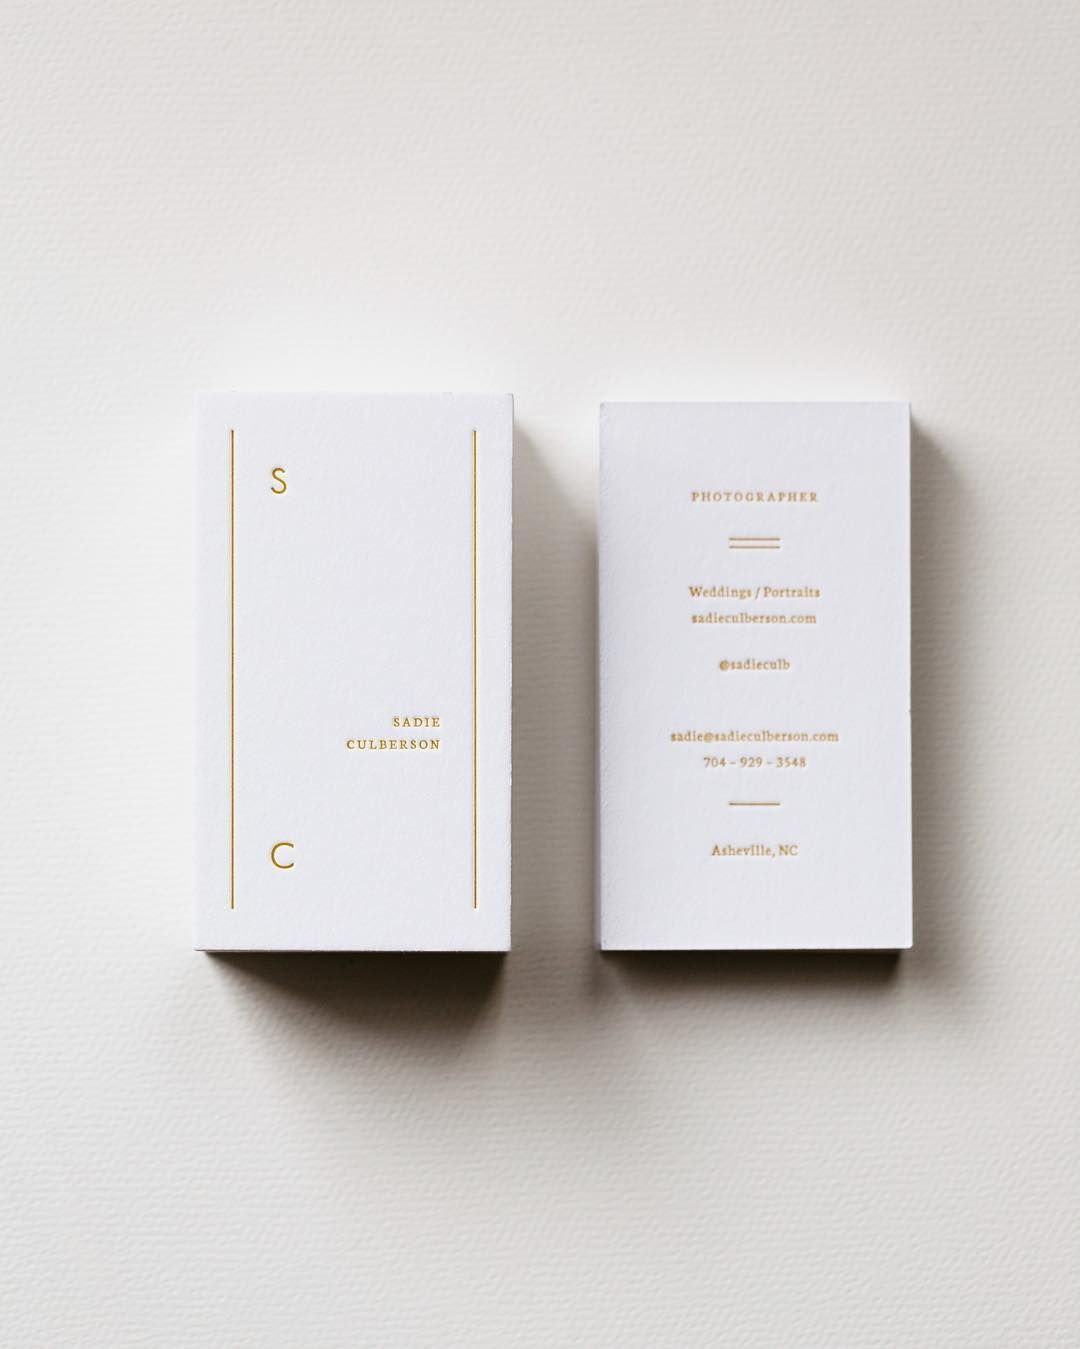 sophisticated business cards | Print + Branded Collateral ...